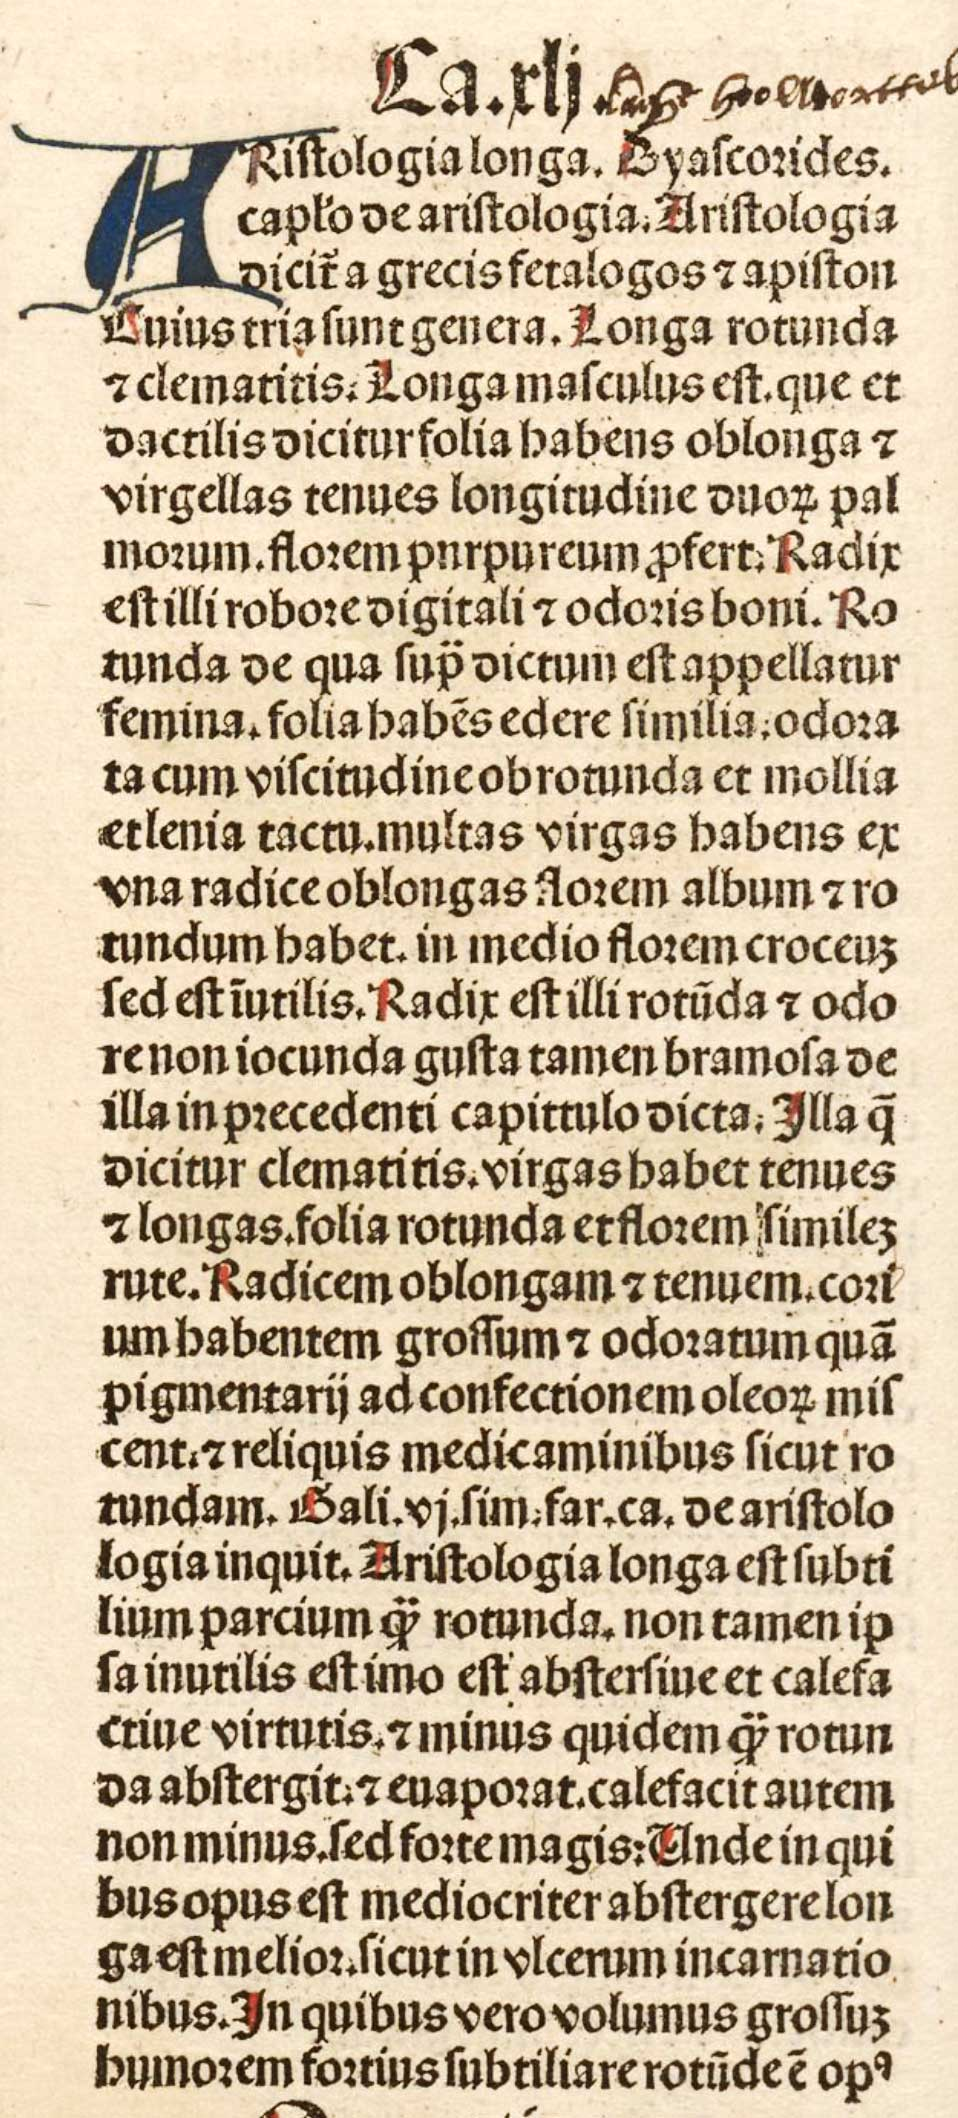 Aristologia longa (text)